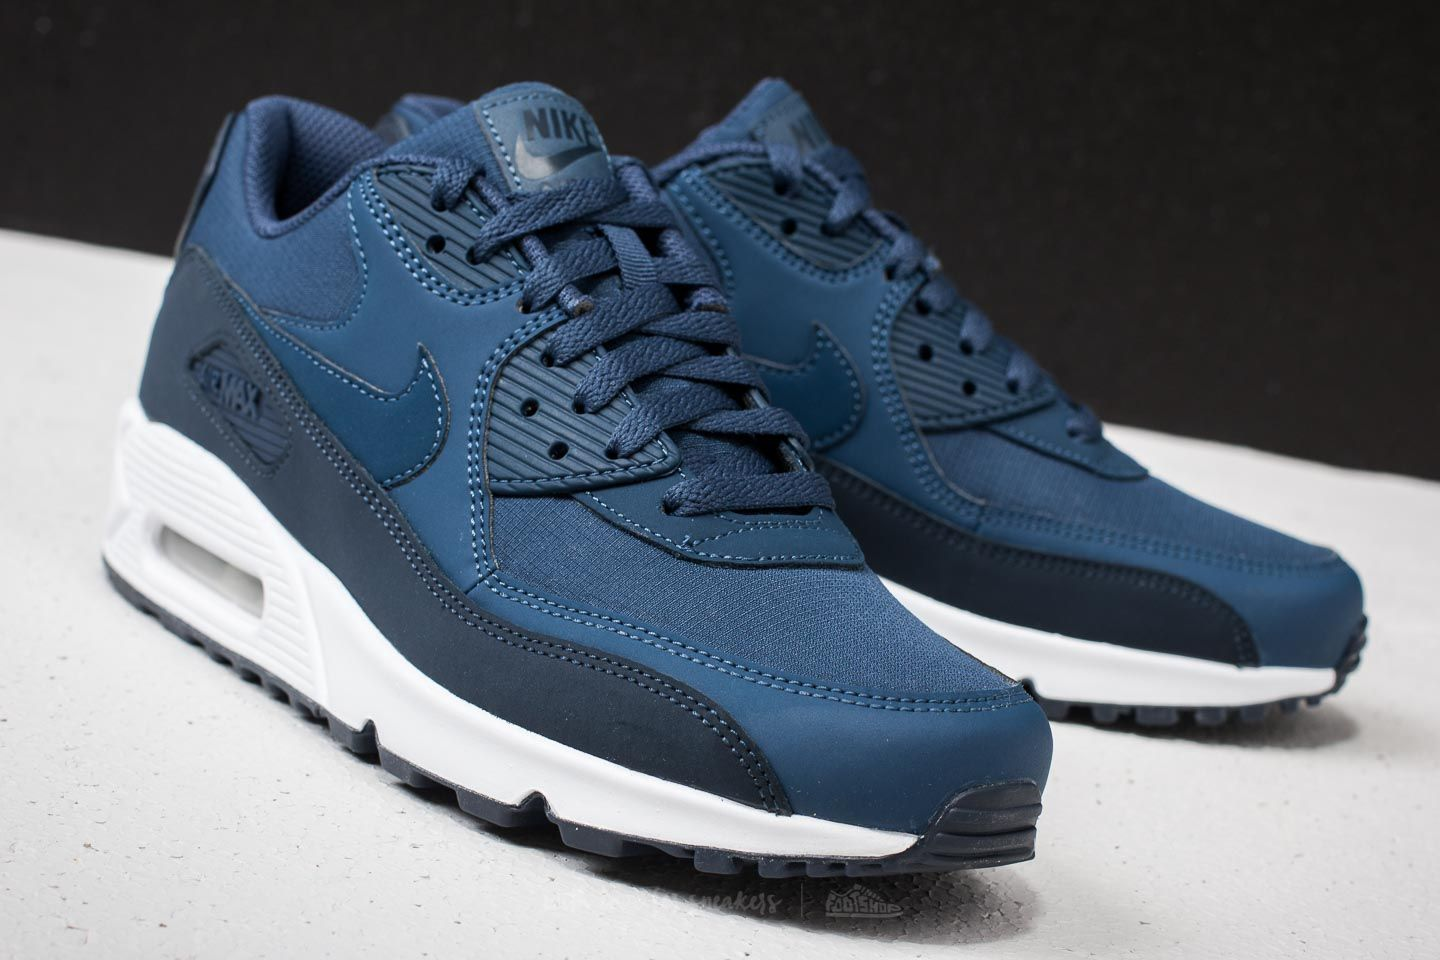 85d6c5f7337 Nike Air Max 90 Essential Obsidian/ Navy-White | Footshop